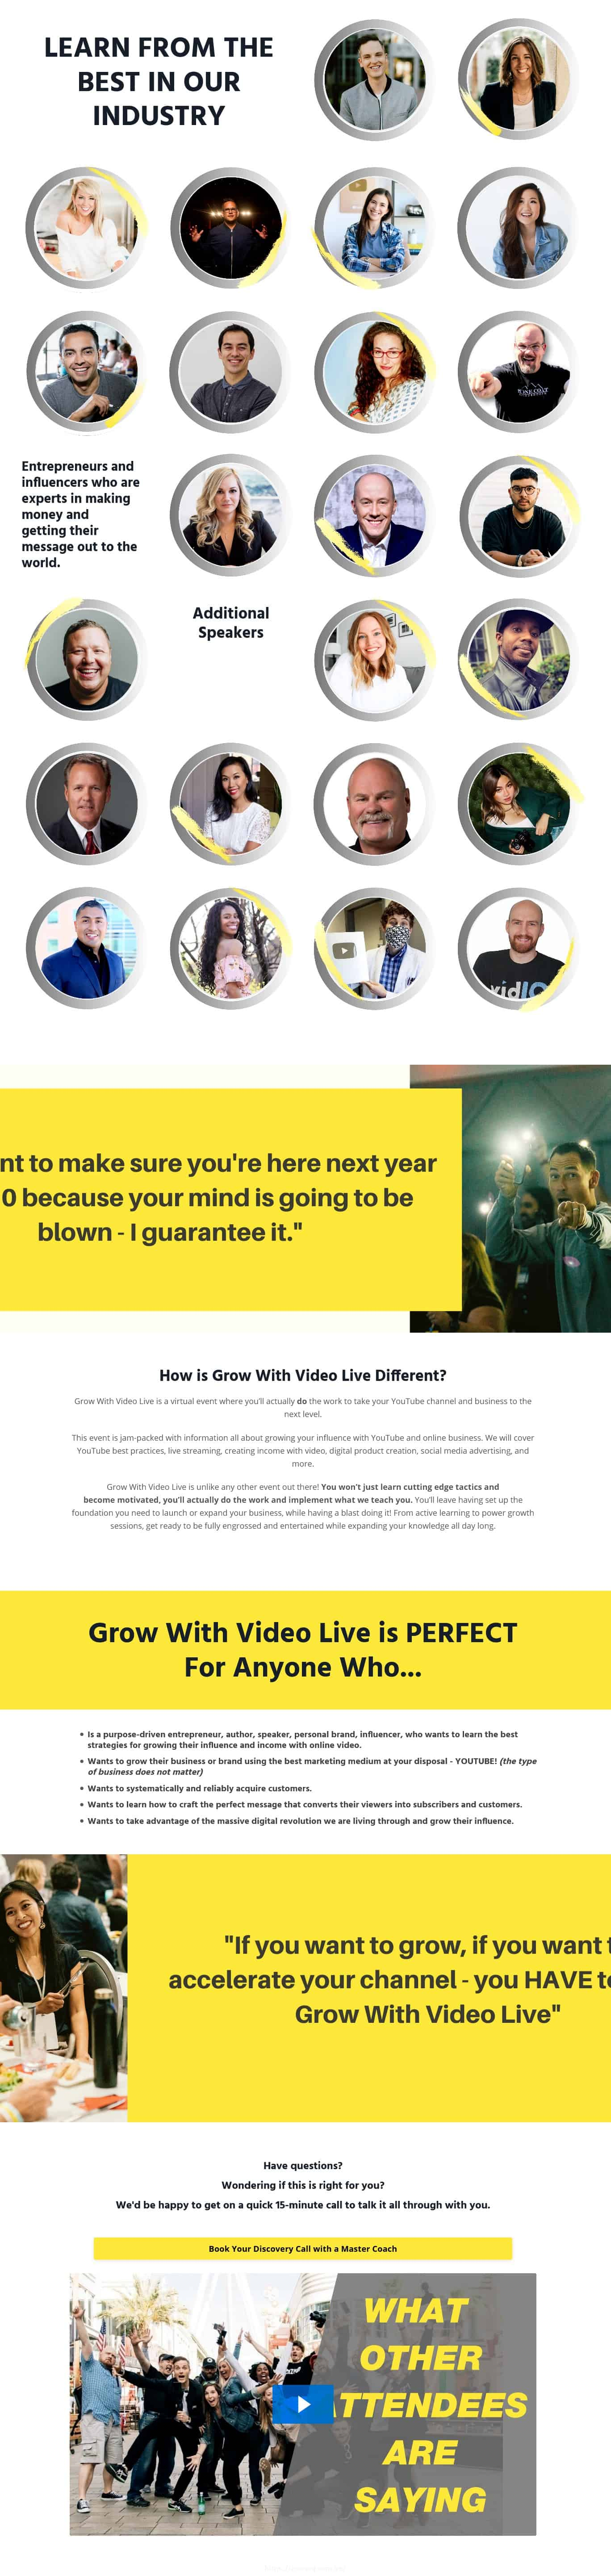 Grow With Video Live 2020 Sales Page